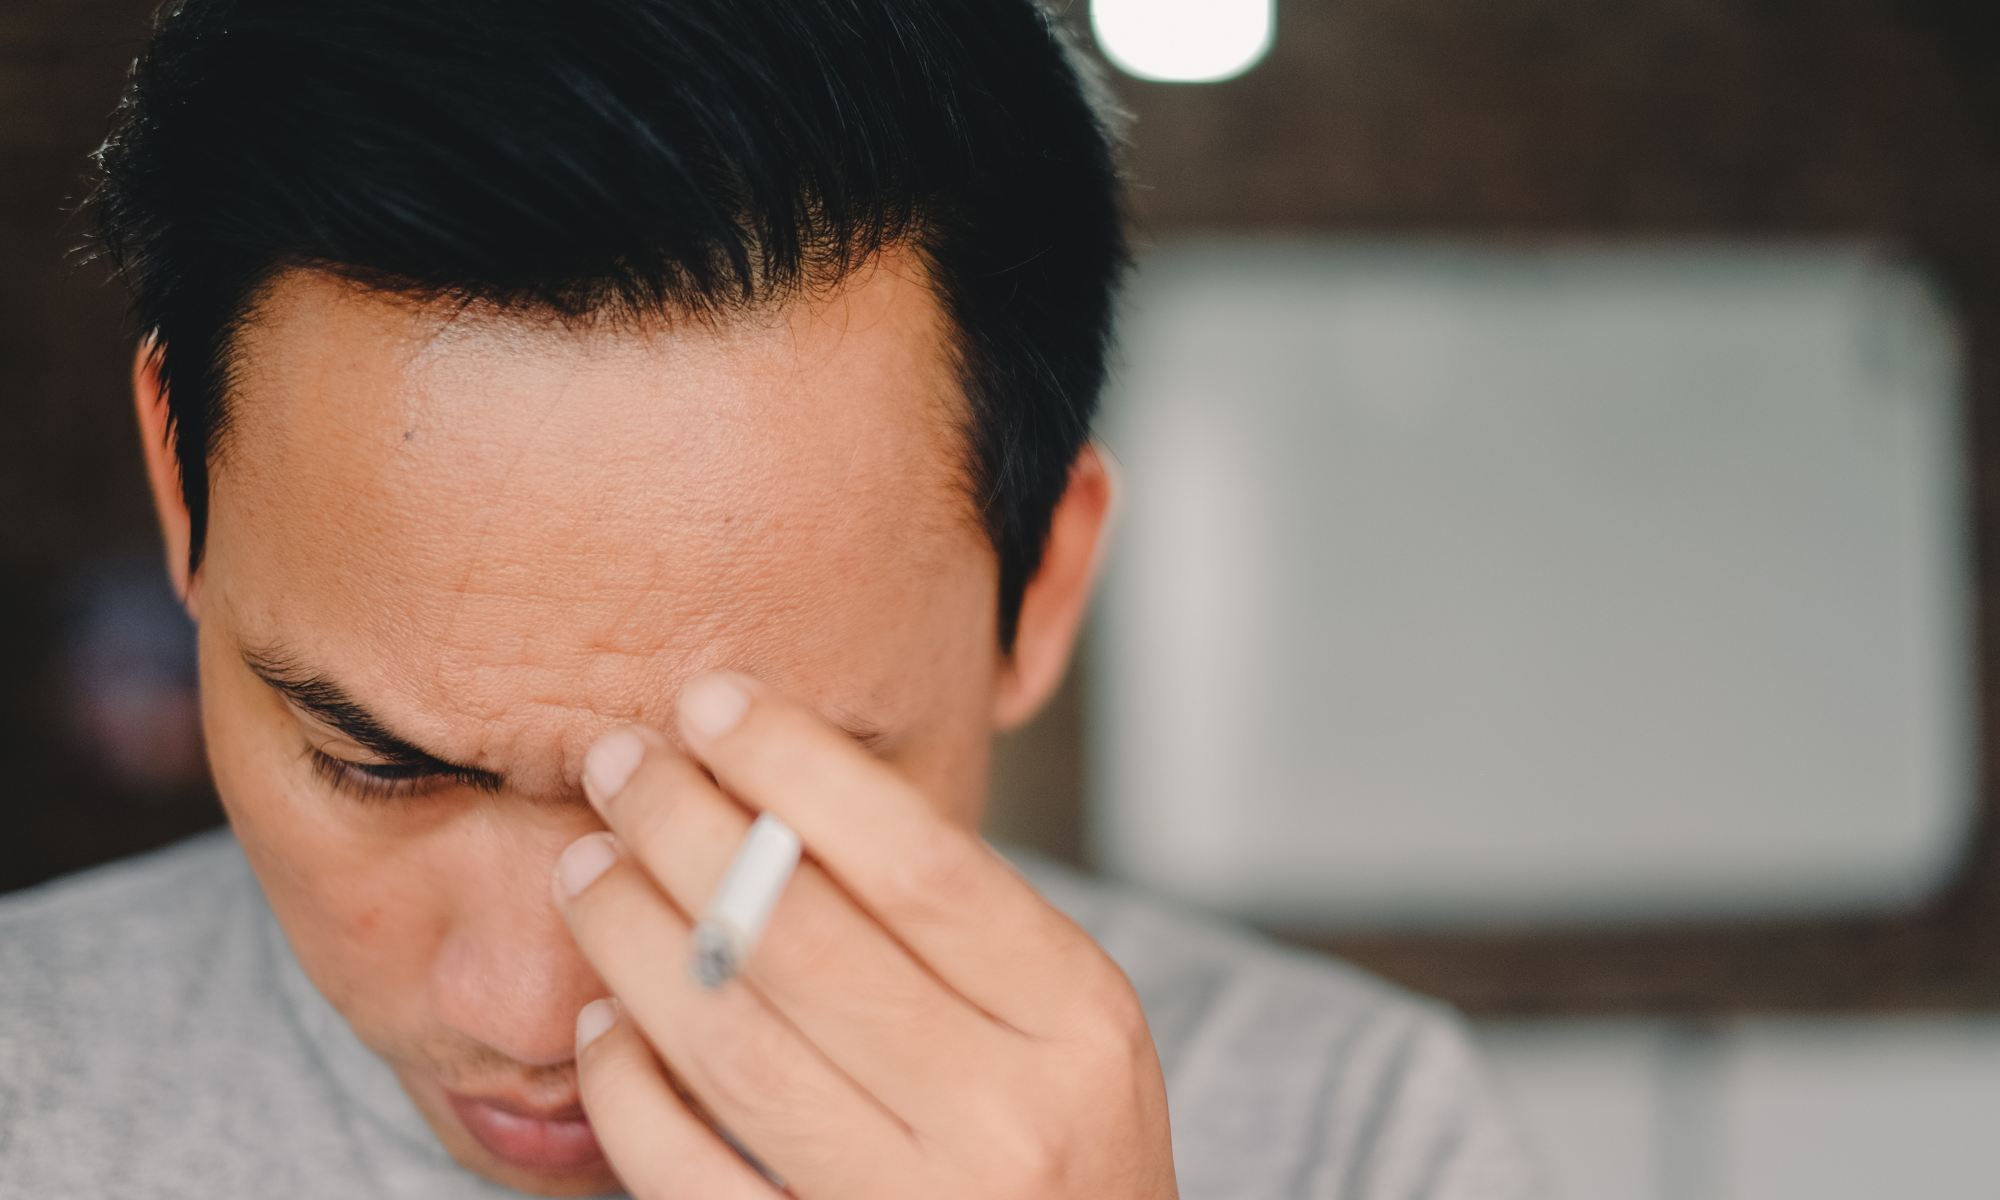 Man holding cigarette and worrying too much